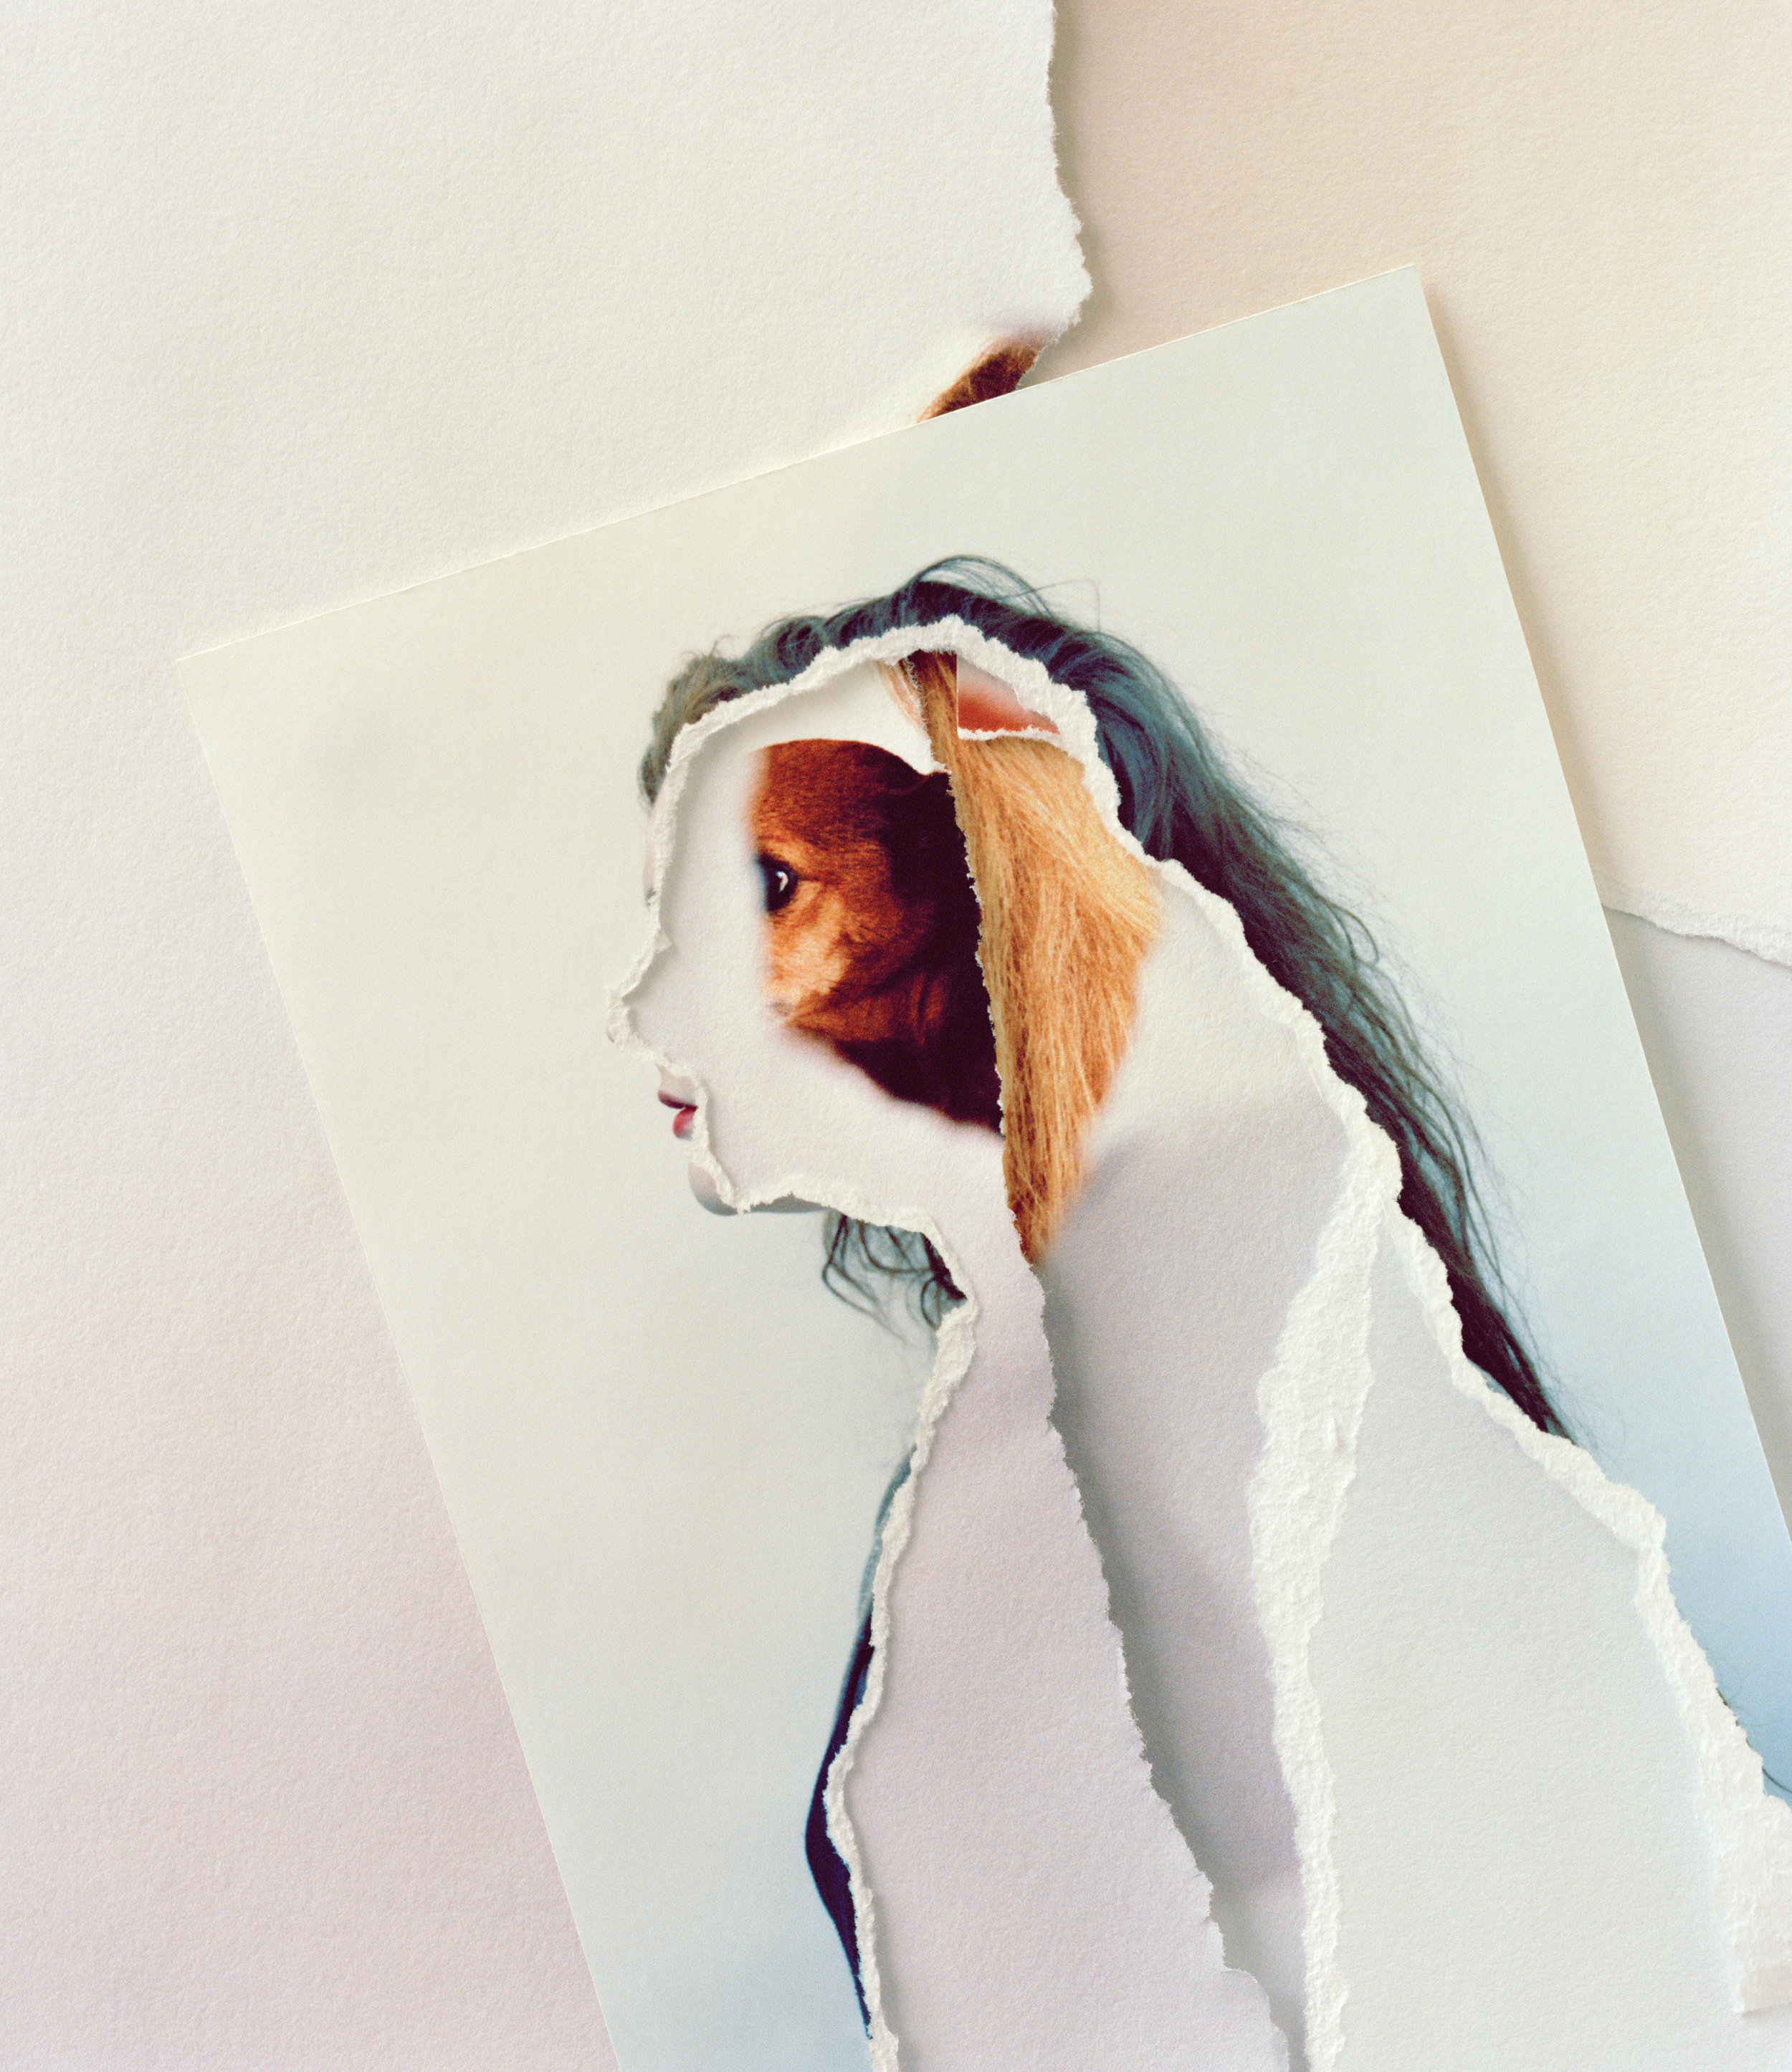 """Sylwia Kowalczyk - """"As important recollections slip from our memory, this loss brings its own kind of grief. The past becomes a vast, blank territory where even the most important memories from childhood are erased - if we do not remember them, perhaps these might as well not have happened in the first place."""""""